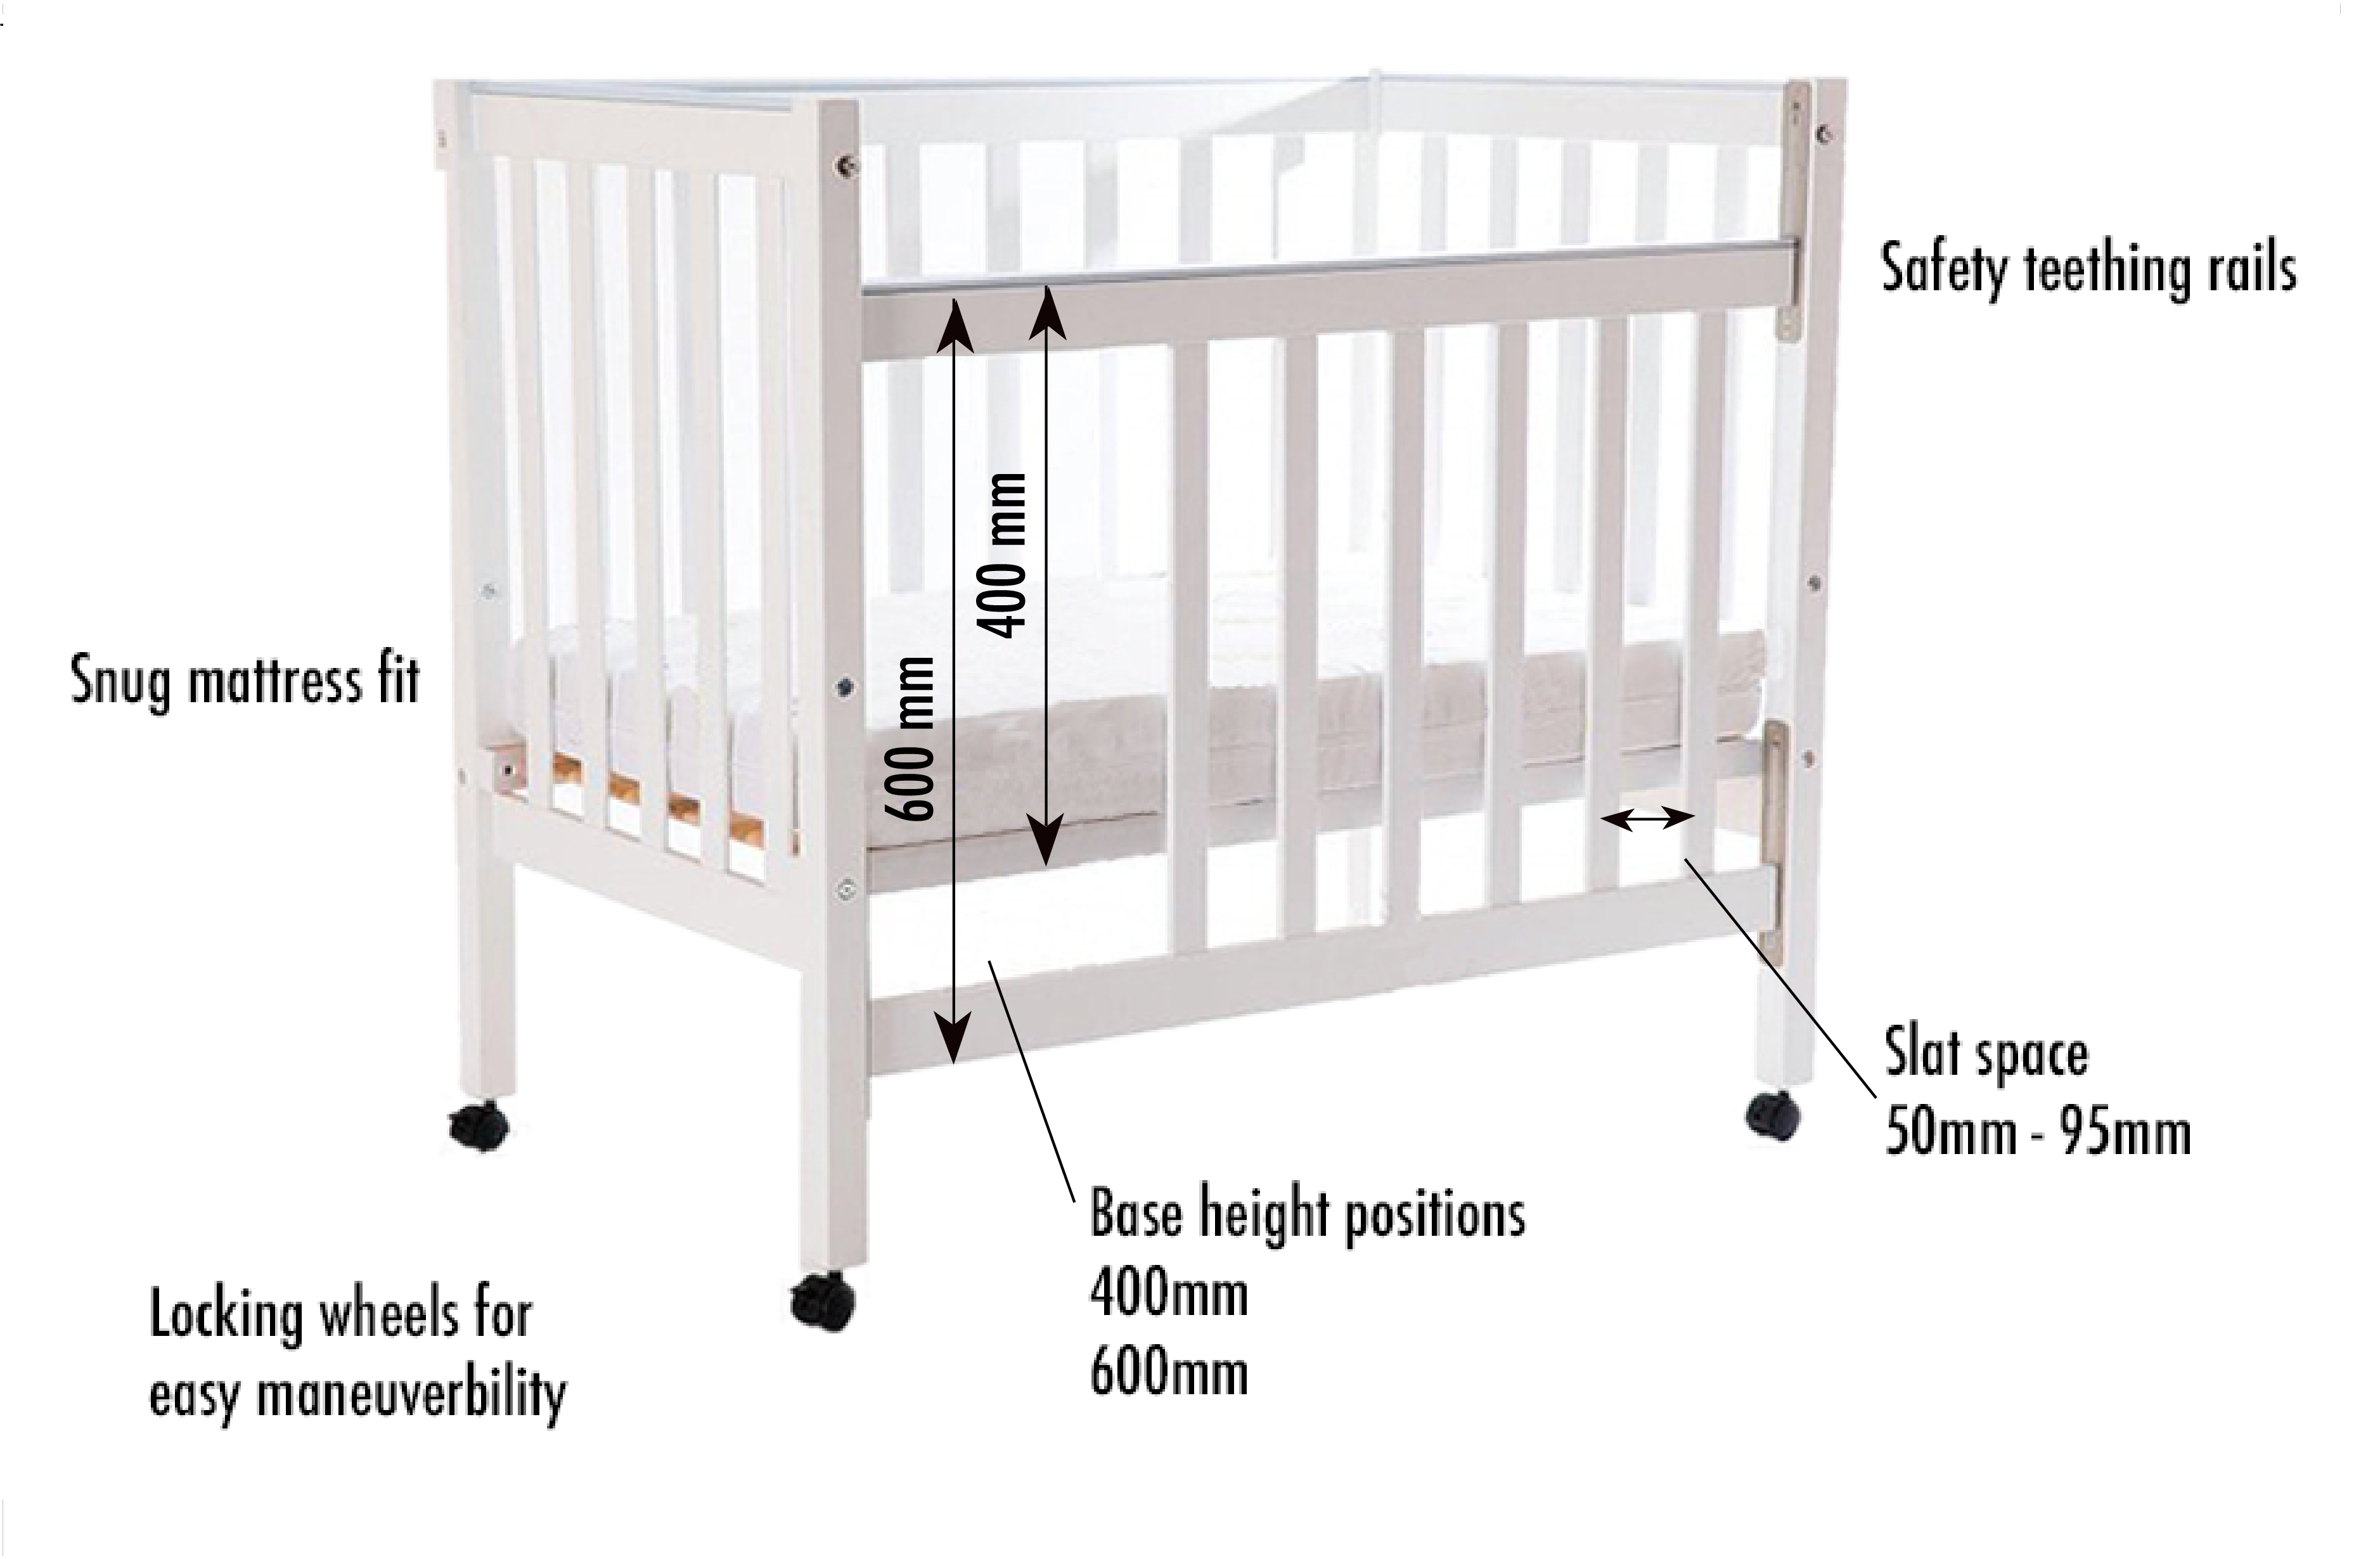 Image of cot highlighting safety features, dimensions and usability. Description contained in the text below.